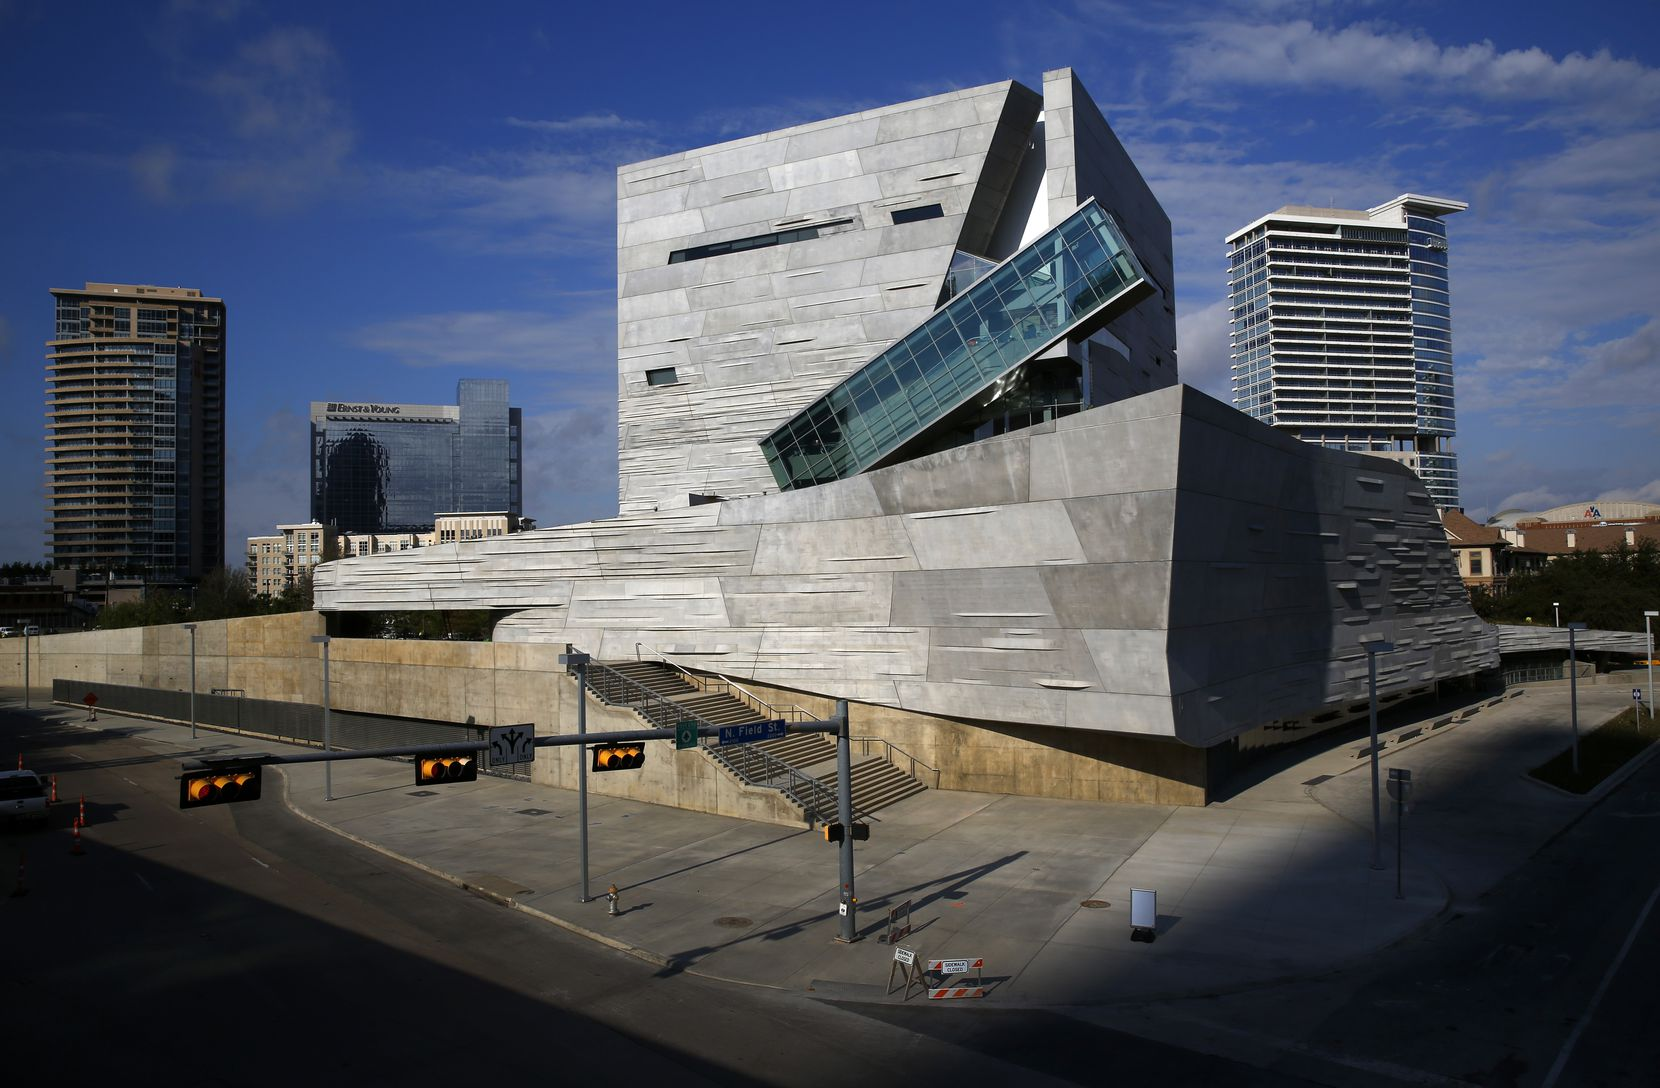 The Perot Museum of Nature and Science was theoretically inspired by the Texas landscape, but it more accurately looks like it was dropped in from outer space, or at least Los Angeles.